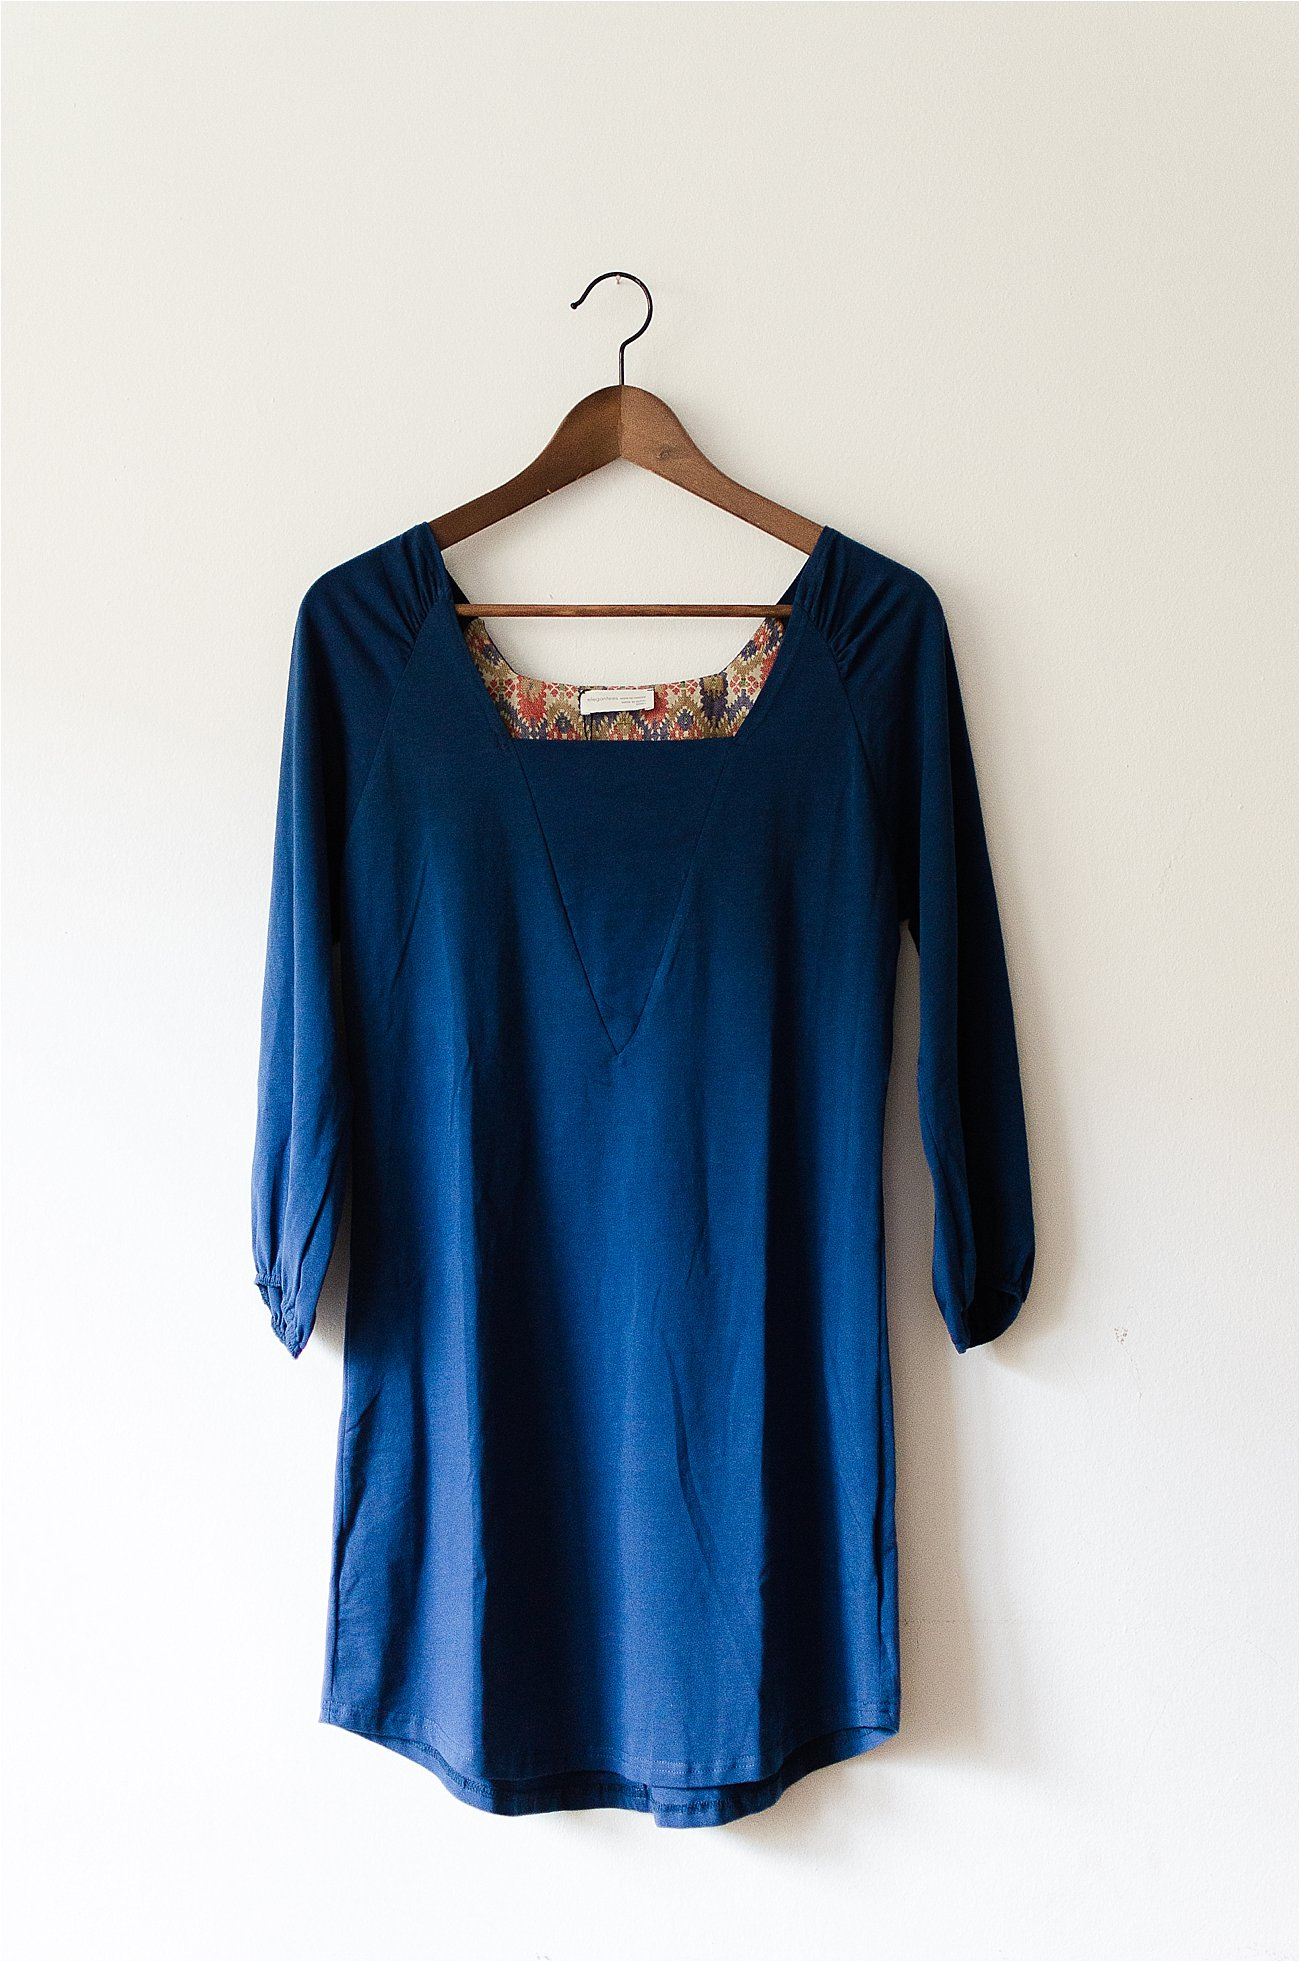 "The Elegantees ""Molly"" Tunic in Estate Blue and Meteorite 